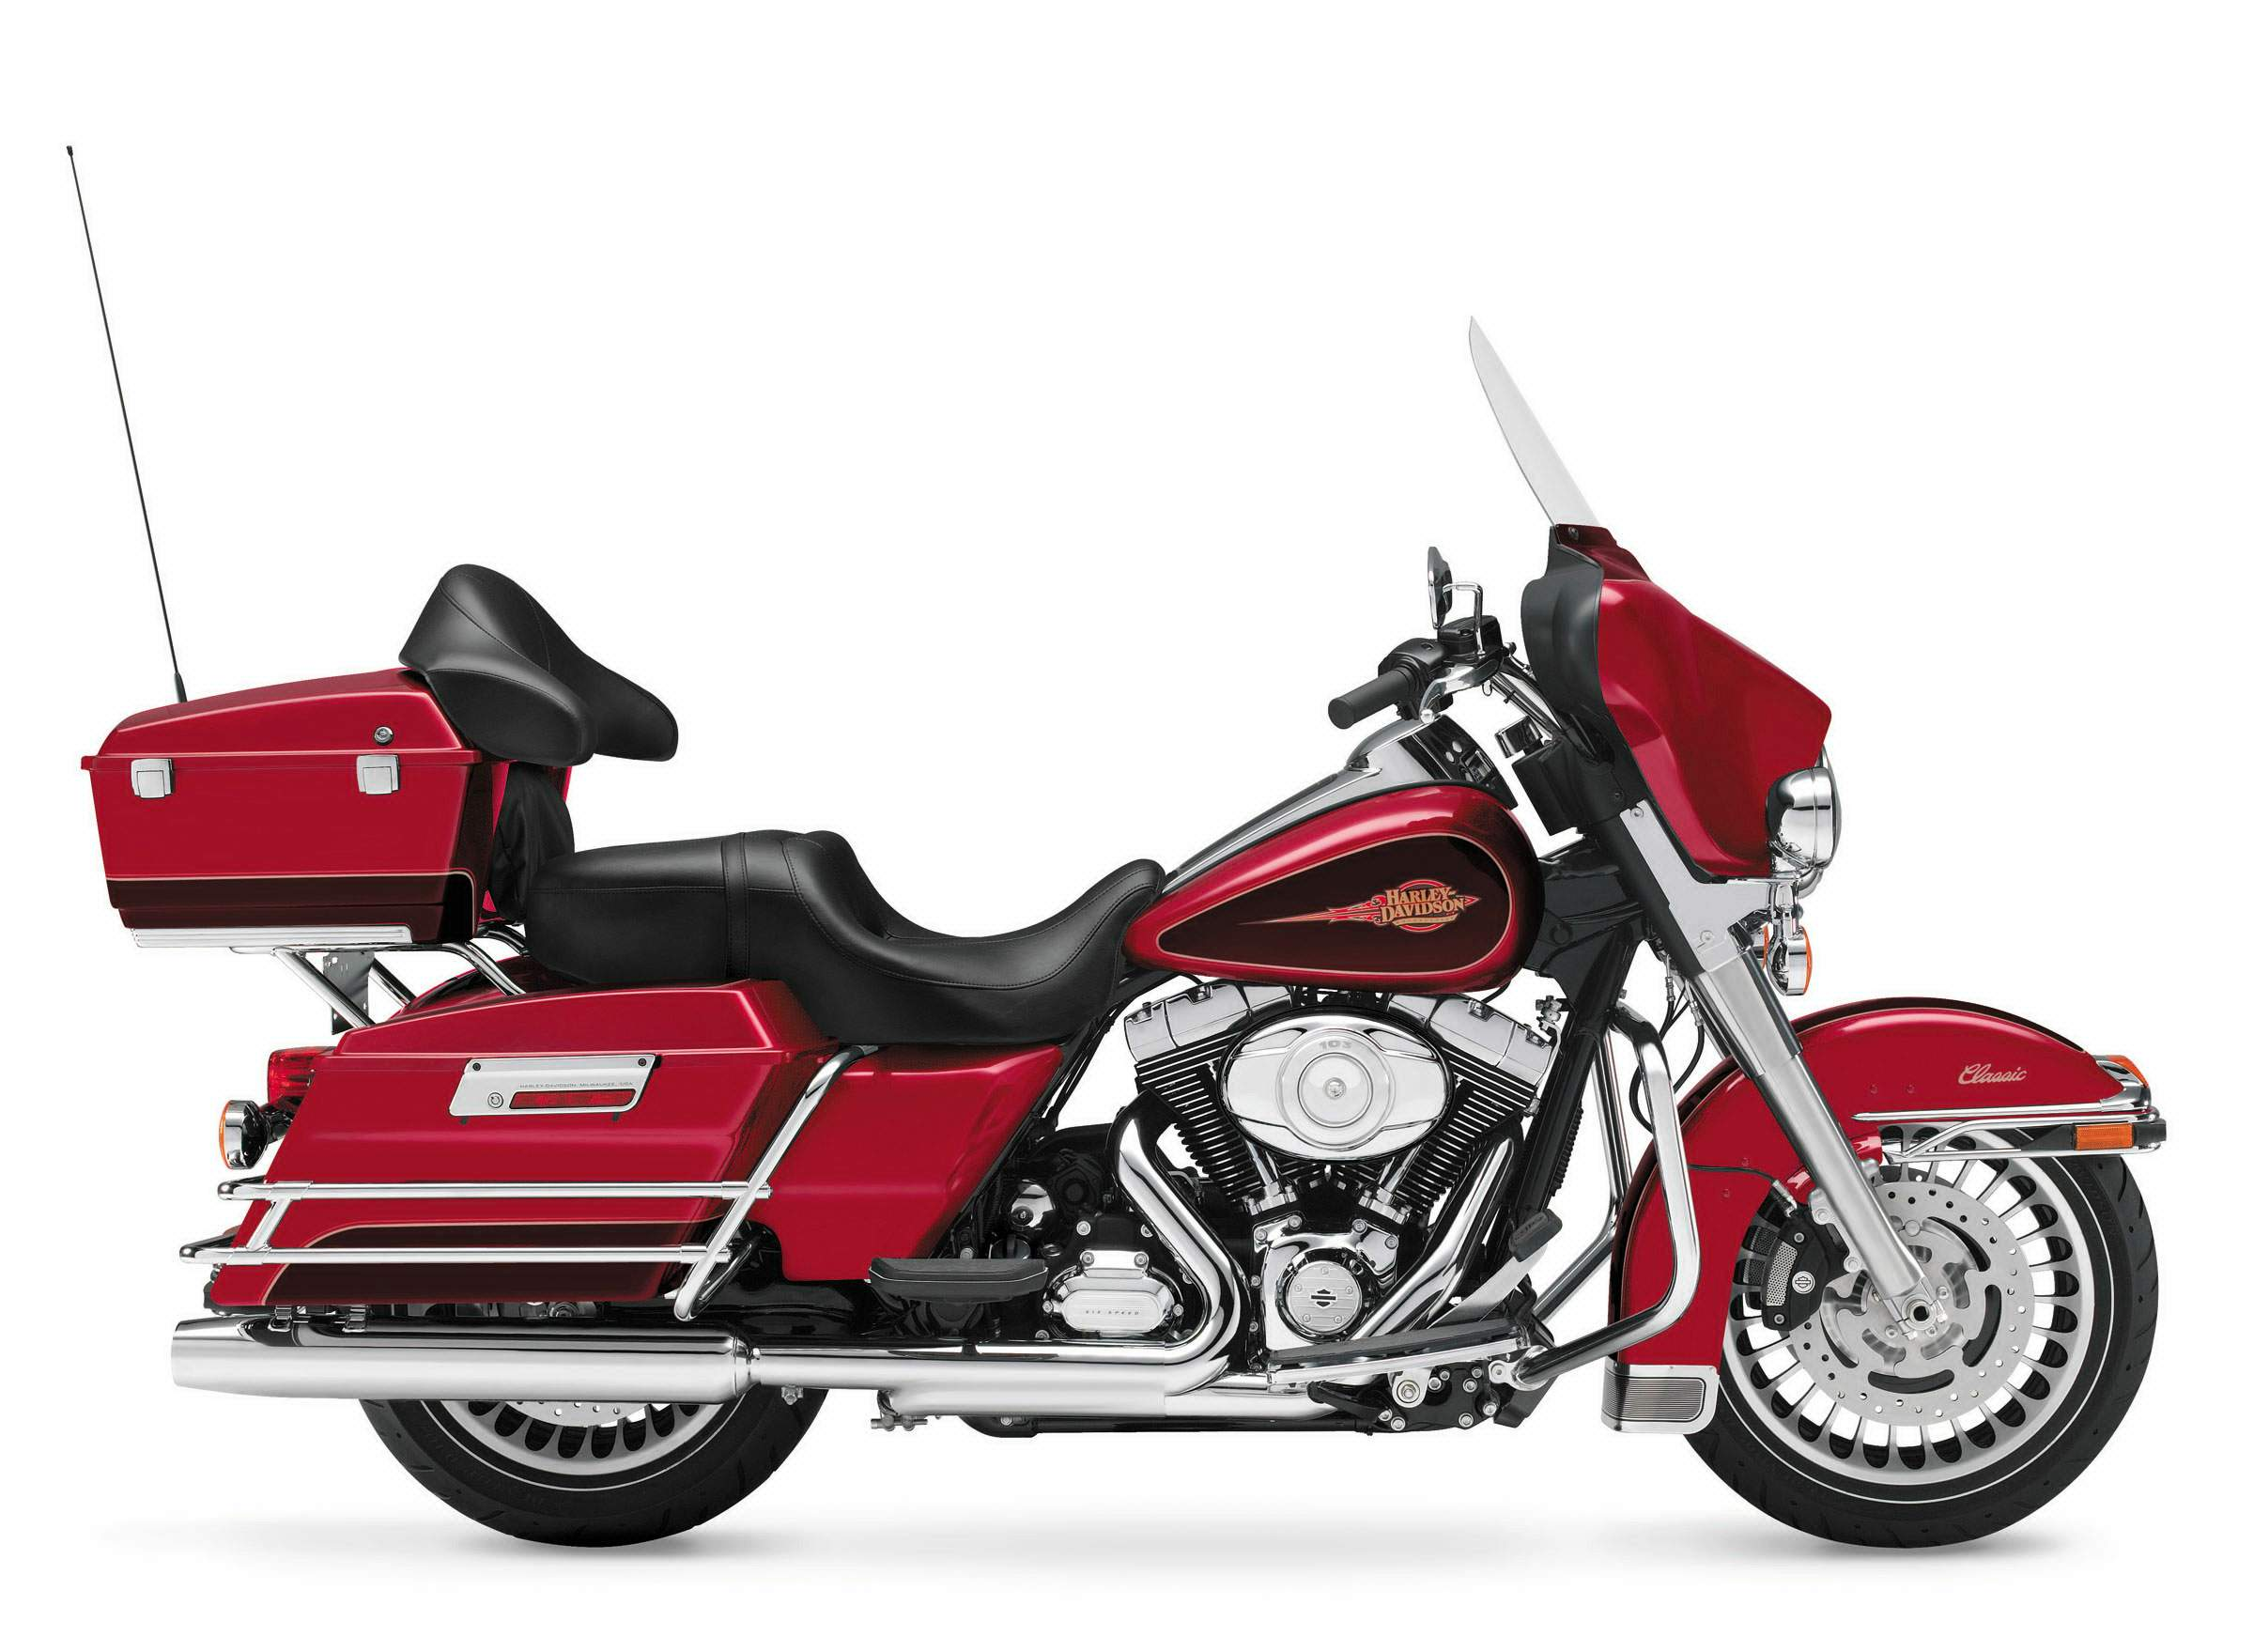 Harley-Davidson FLHTC Electra Glide Classic 2013 pics #19882